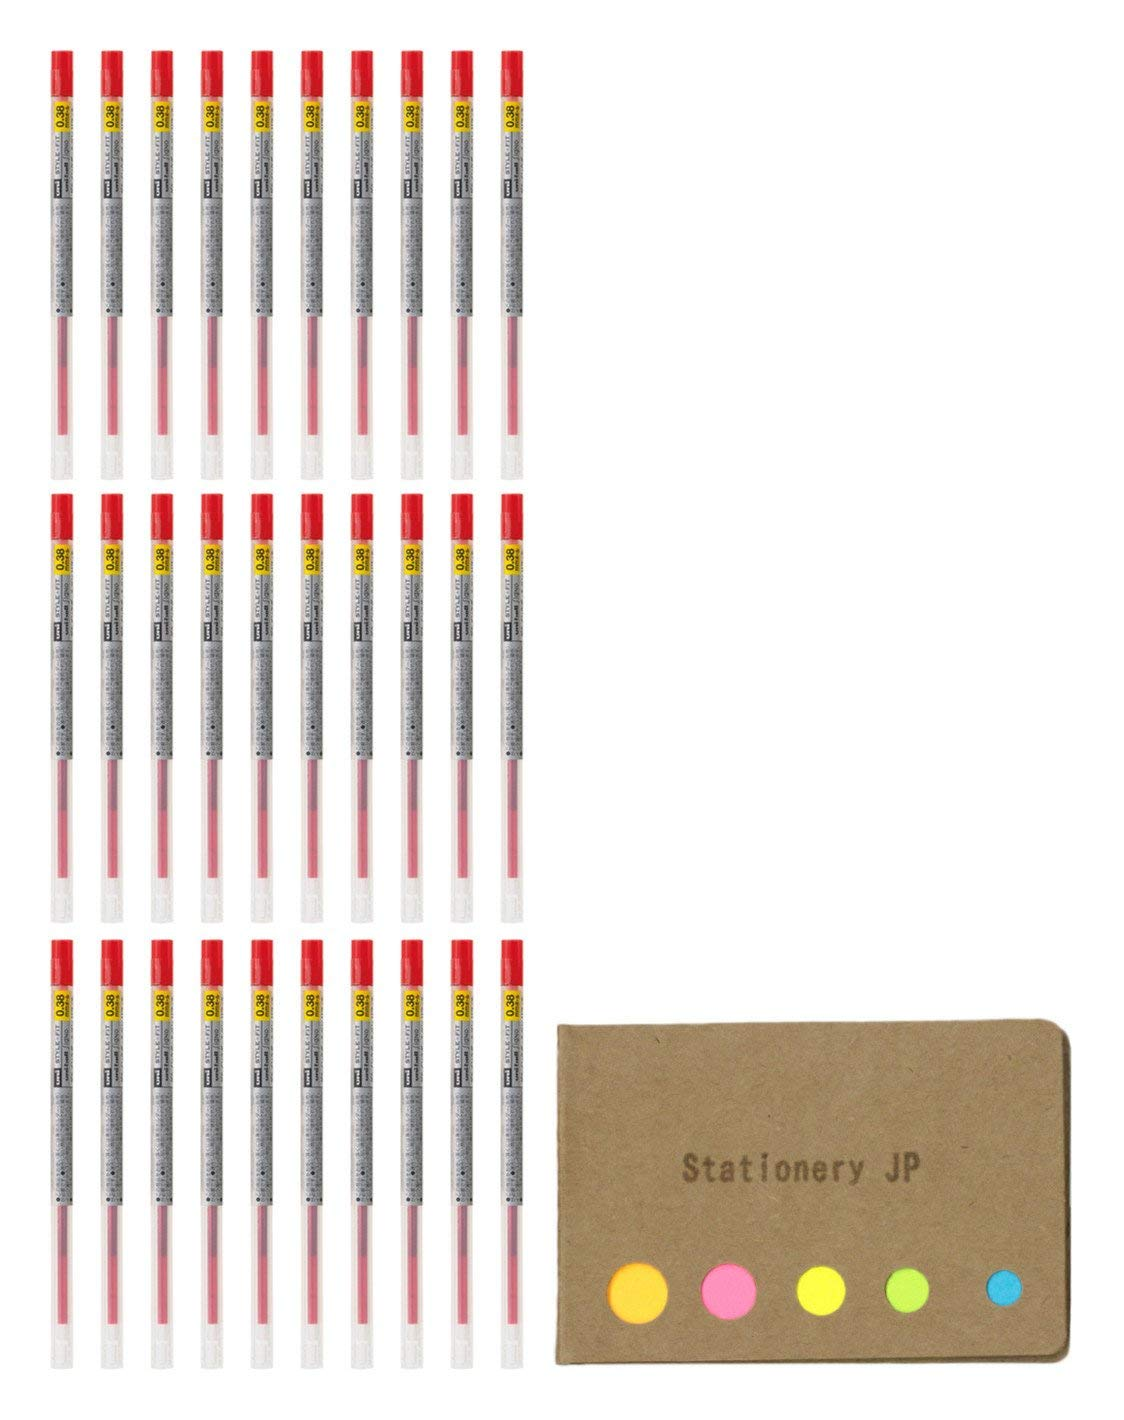 Uni-ball Signo Gel Ink Refills for Uni Style Fit Gel Multi Pen 0.38mm Red Ink, 30-pack, Sticky Notes Value Set